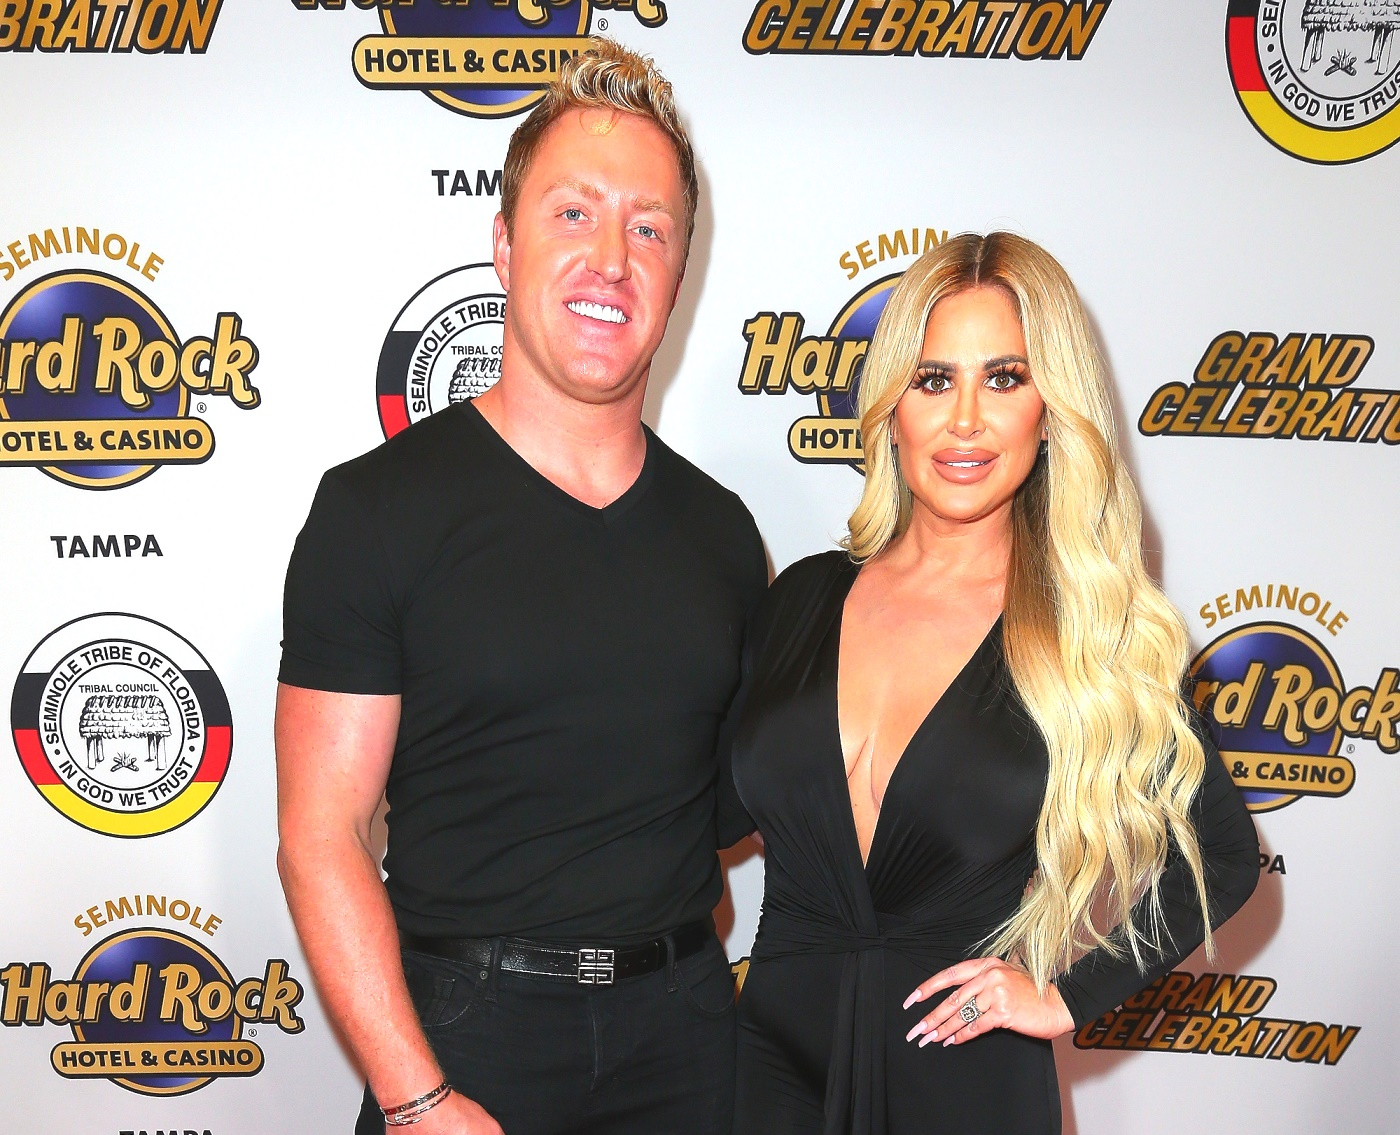 """Kim Zolciak's Husband Kroy Biermann Accused of Owing $22,000 to NFL Agent, Plus Don't Be Tardy Star Shades RHOA's Storylines as """"Redundant"""""""